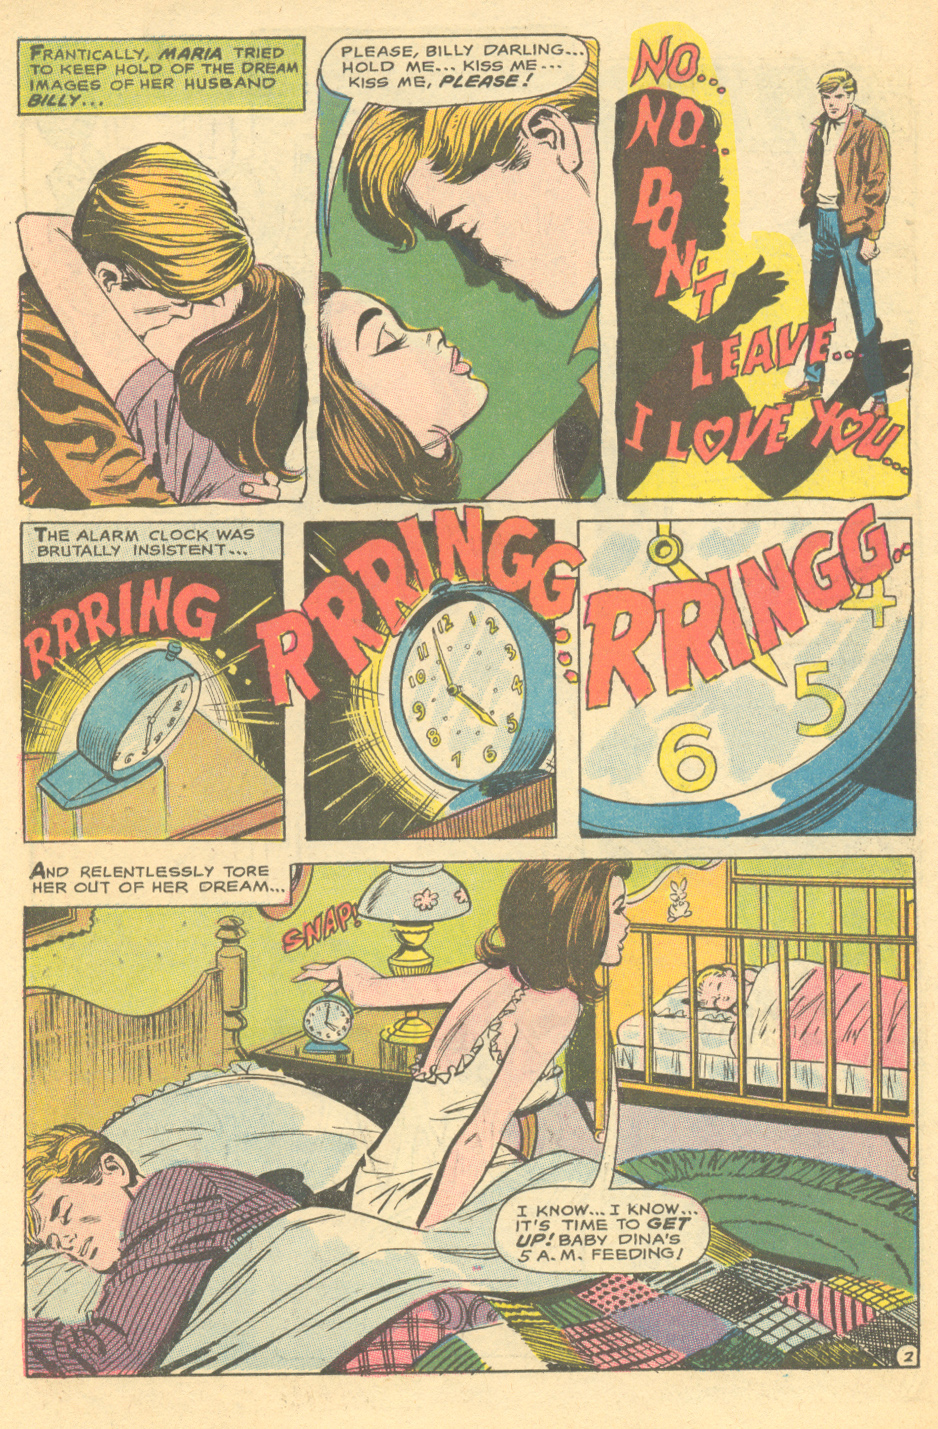 """Enter Marriage... Exit Romance!"" from Young Romance #159 (April/May 1969) (with art that appears to be by Win Mortimer and Vince Colletta"